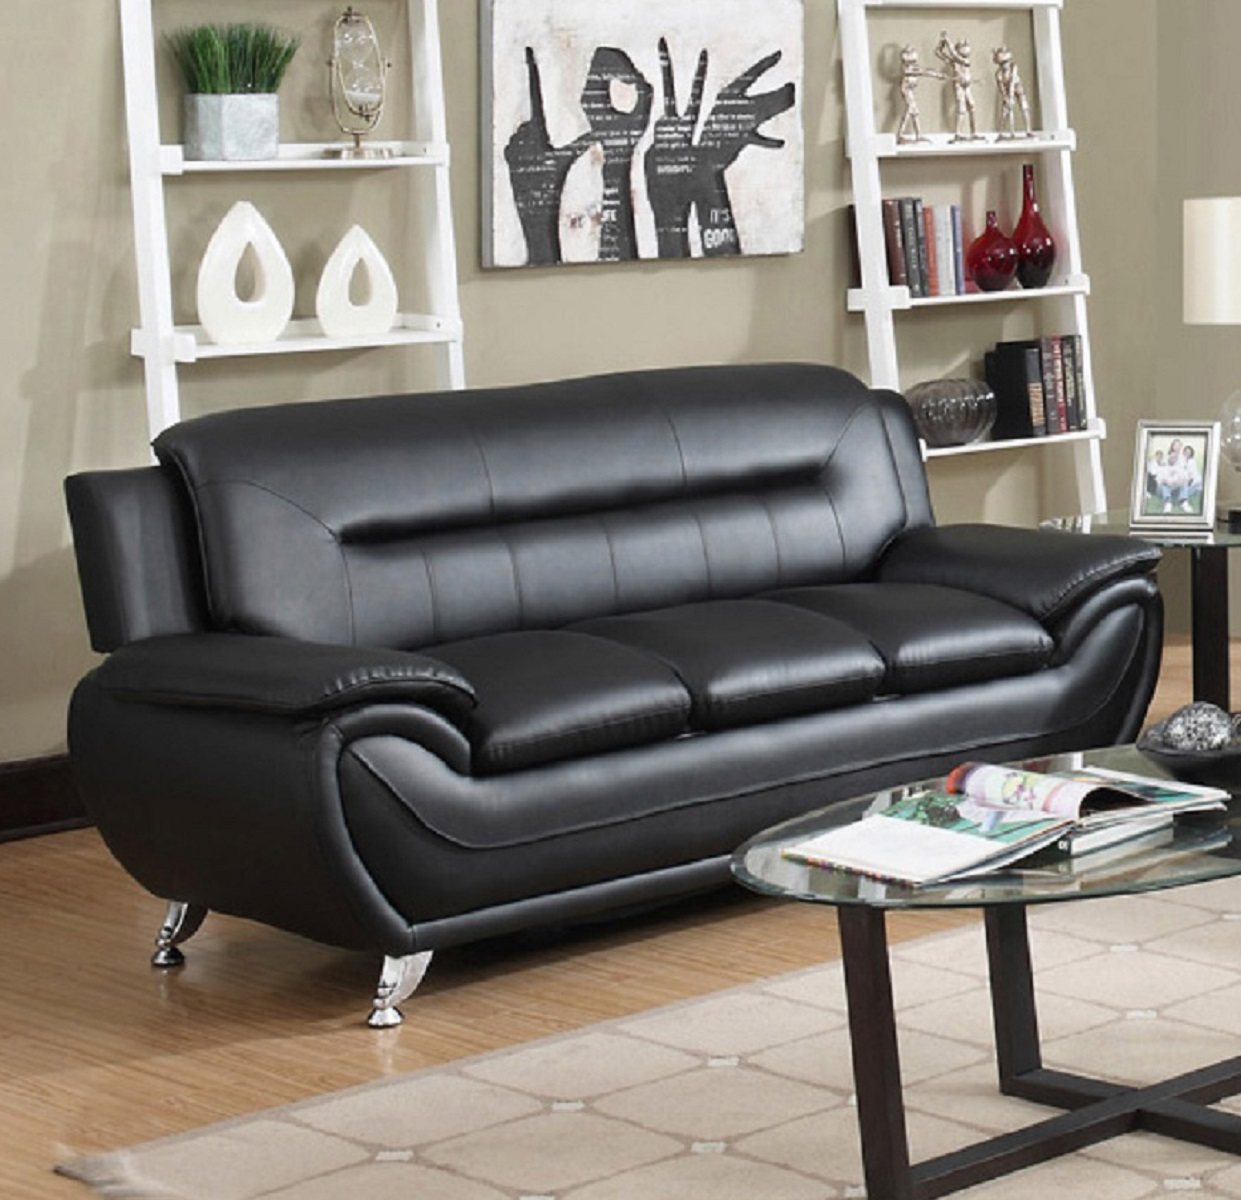 viscologic paradise pillow top premium faux leather sofa couch for home office living room black